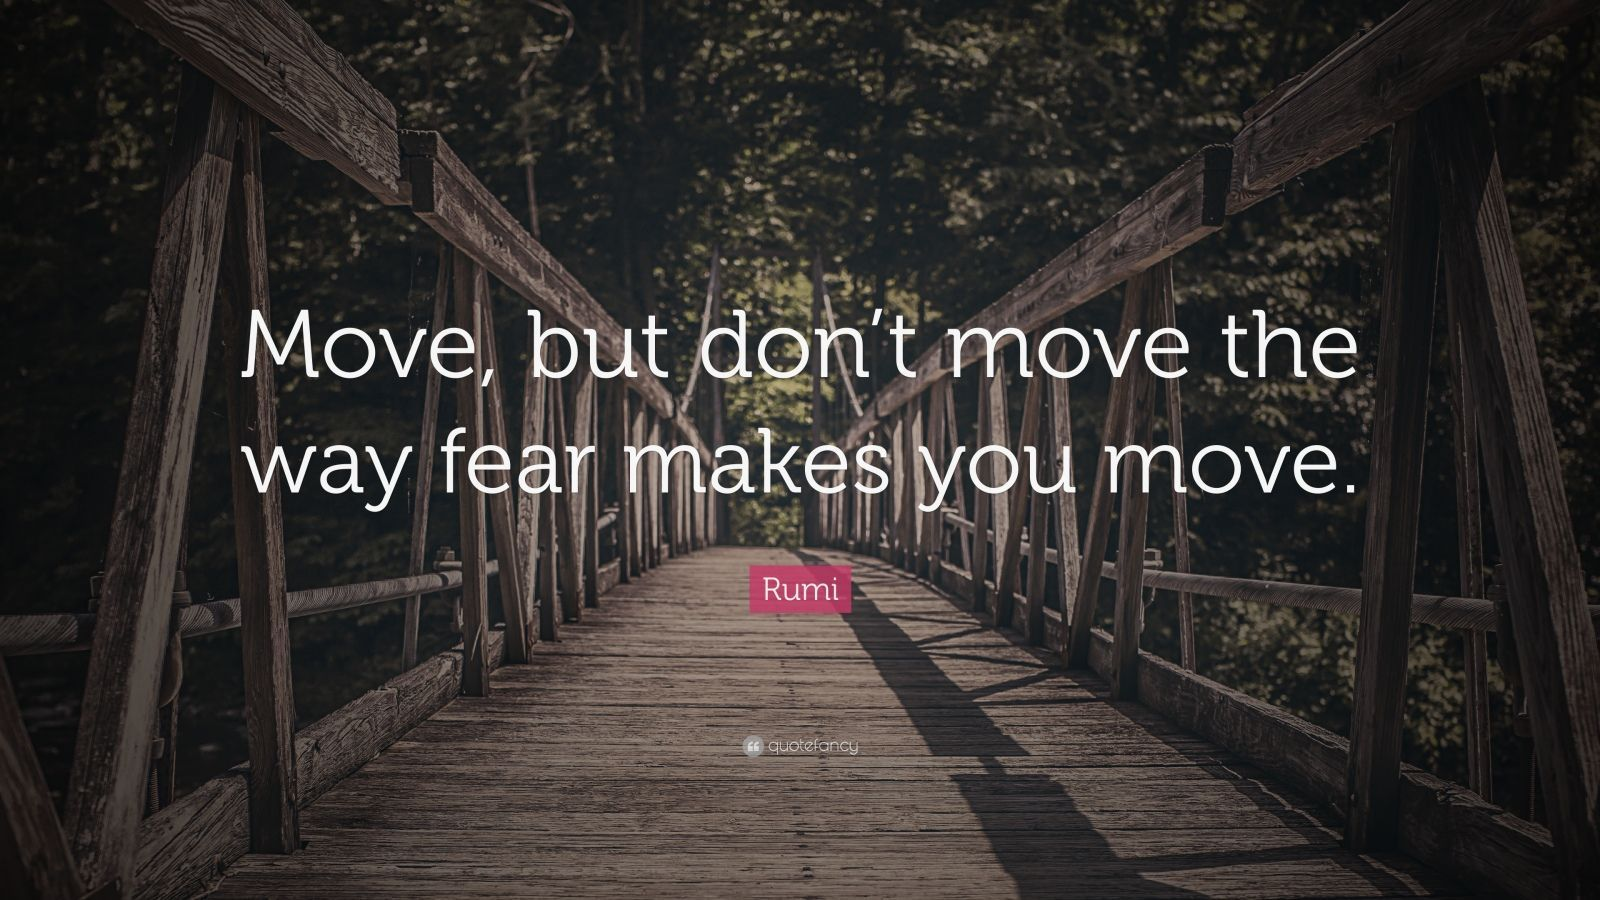 Rumi Quotes About Friendship Discover The Top 25 Most Inspiring Rumi Quotes Mystical Rumi